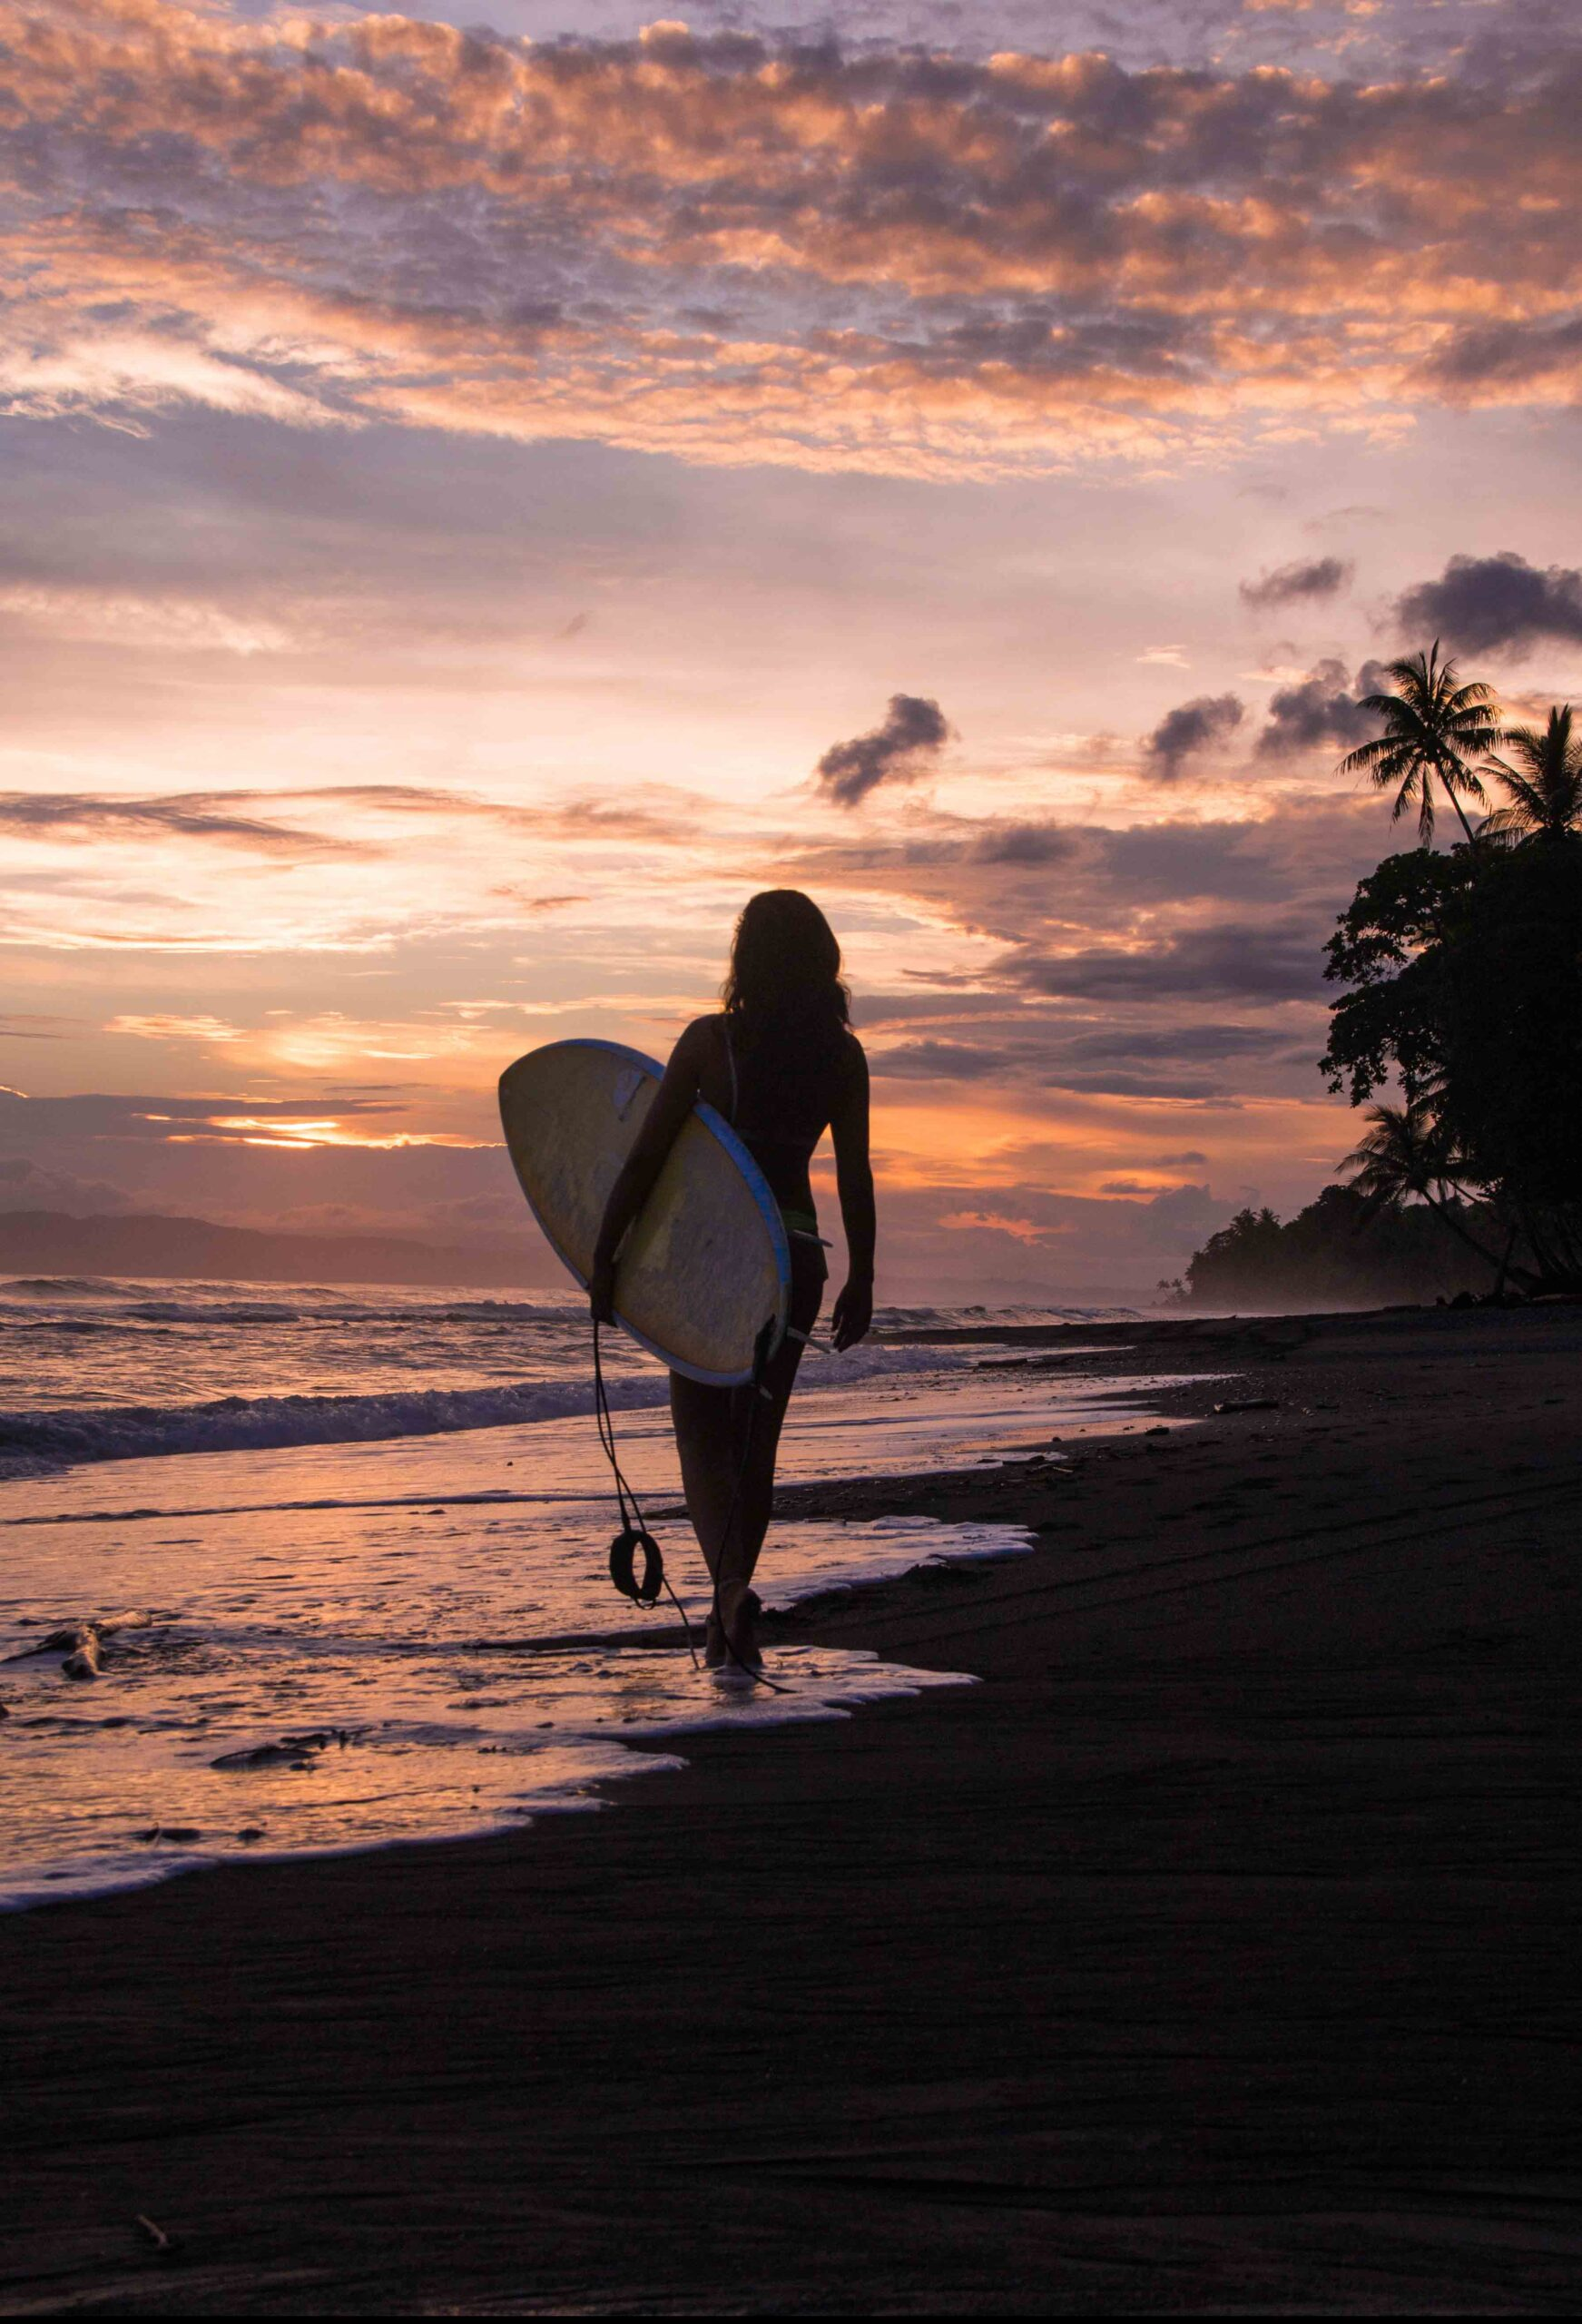 surfer girl sunset Punta Banco Costa Rica